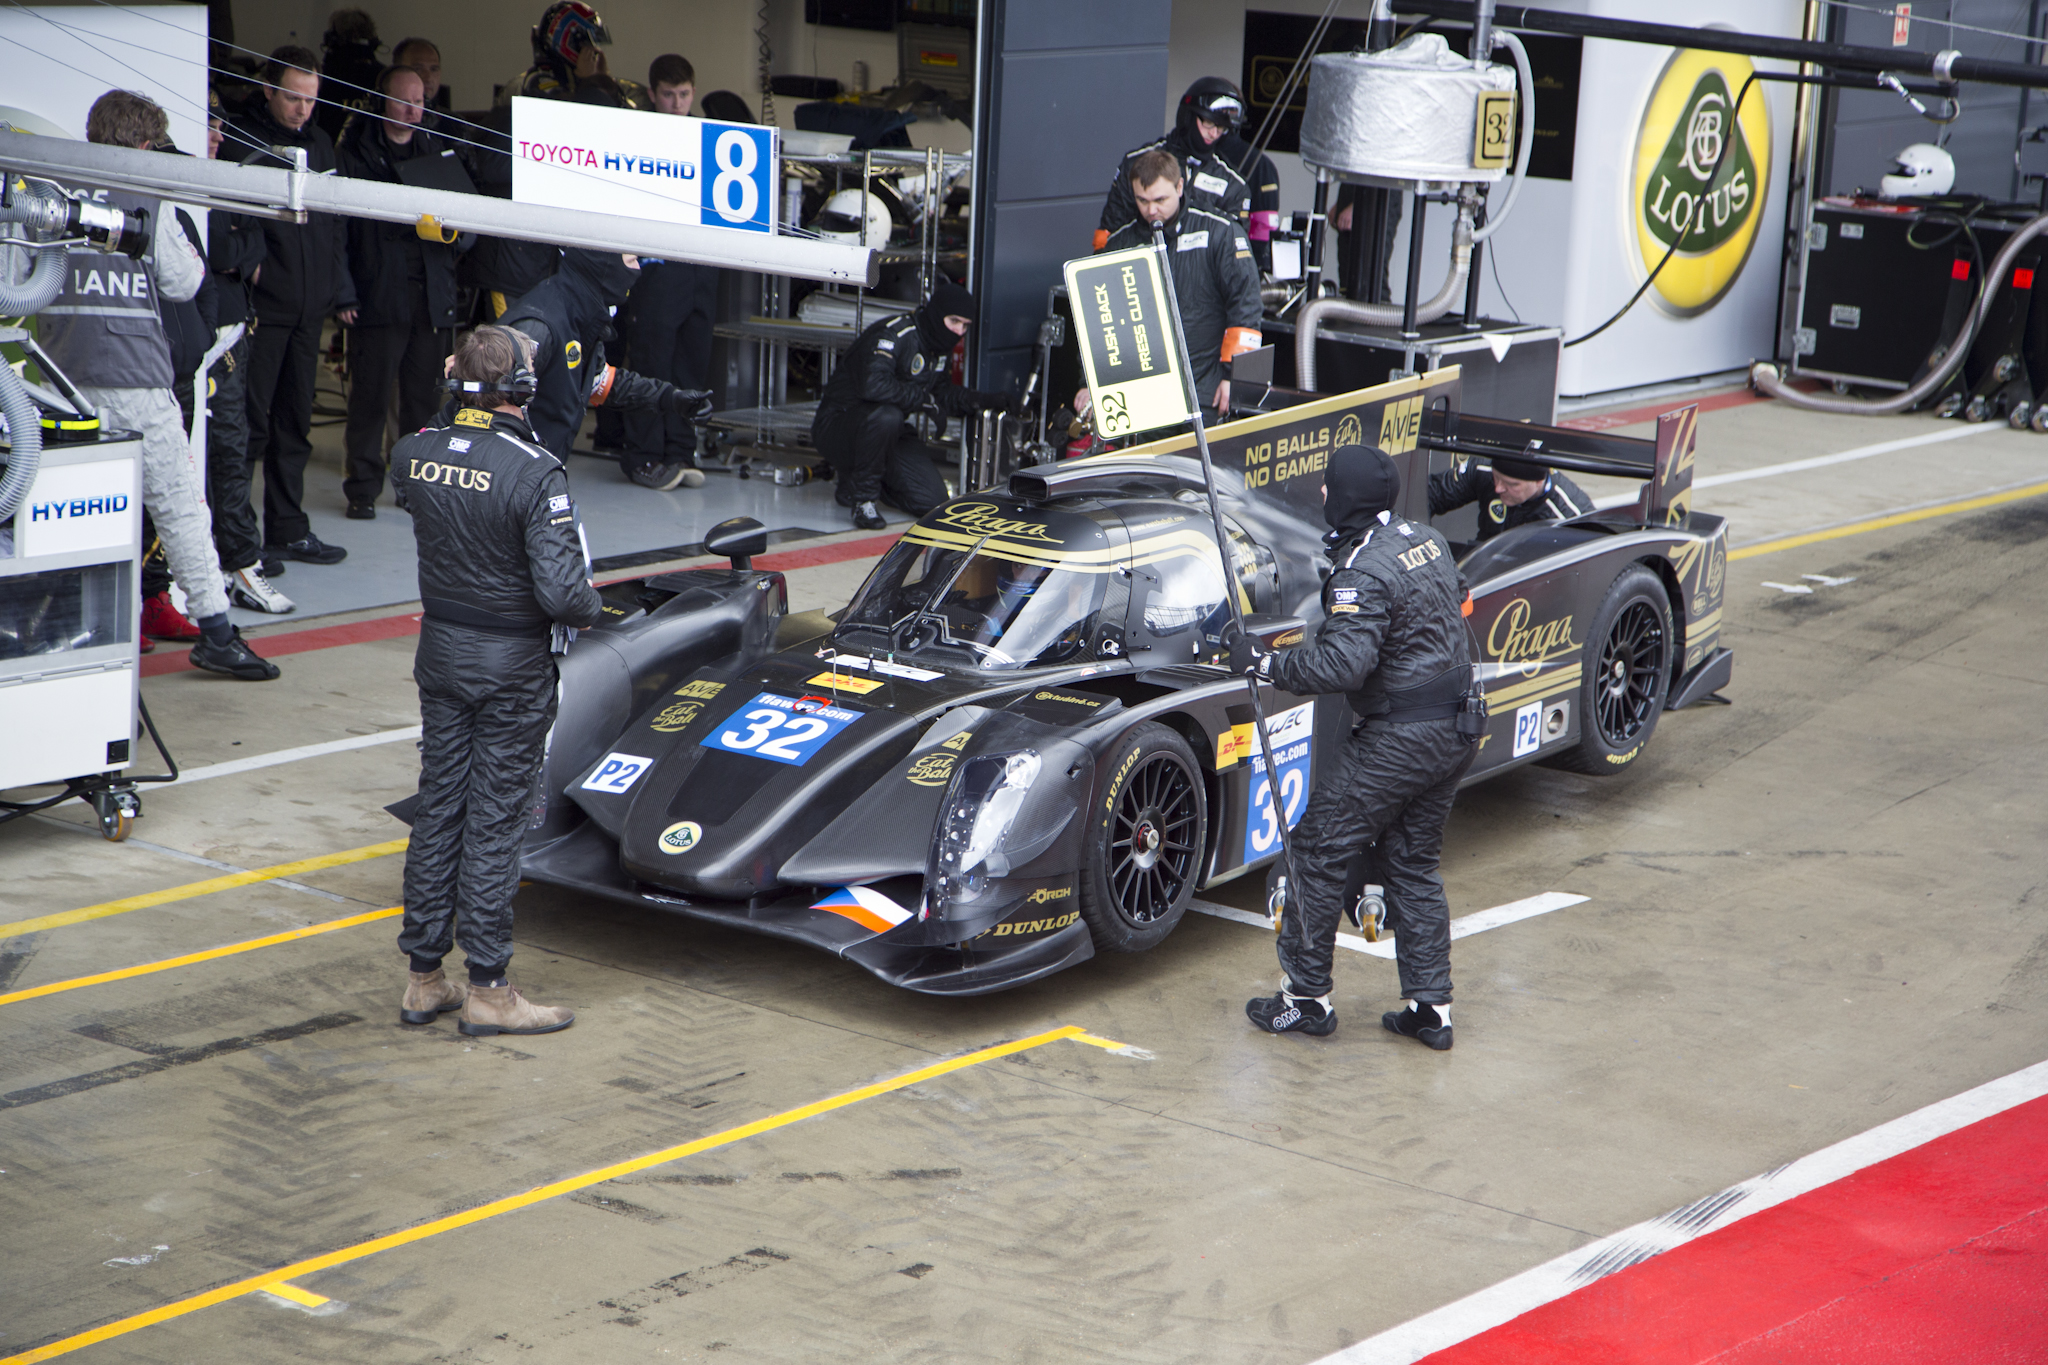 Praga Partners with Lotus for World Endurance Championship